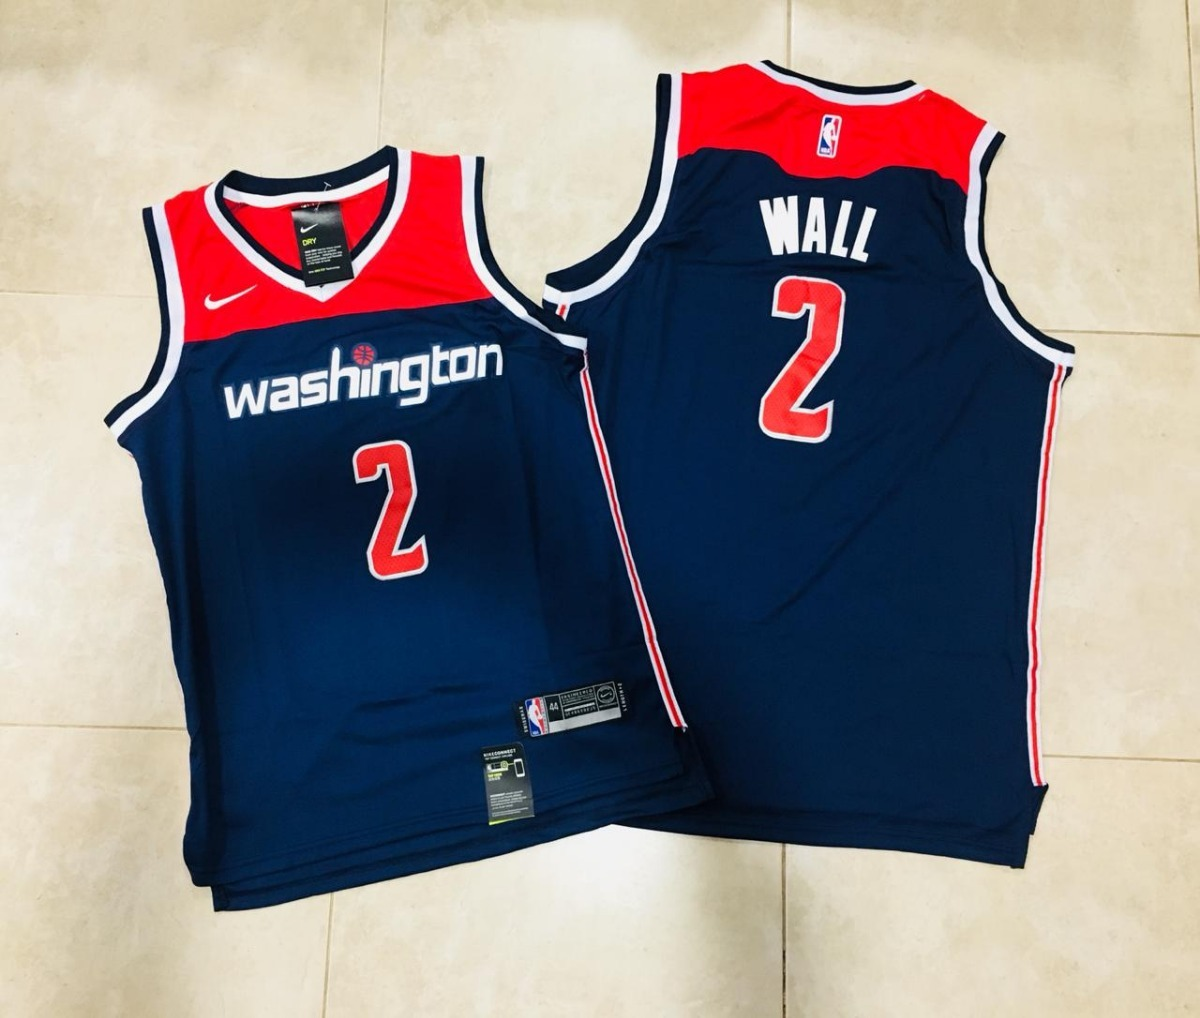 camiseta nike nba washington wizards john wall. Cargando zoom. 92667f3c6319e